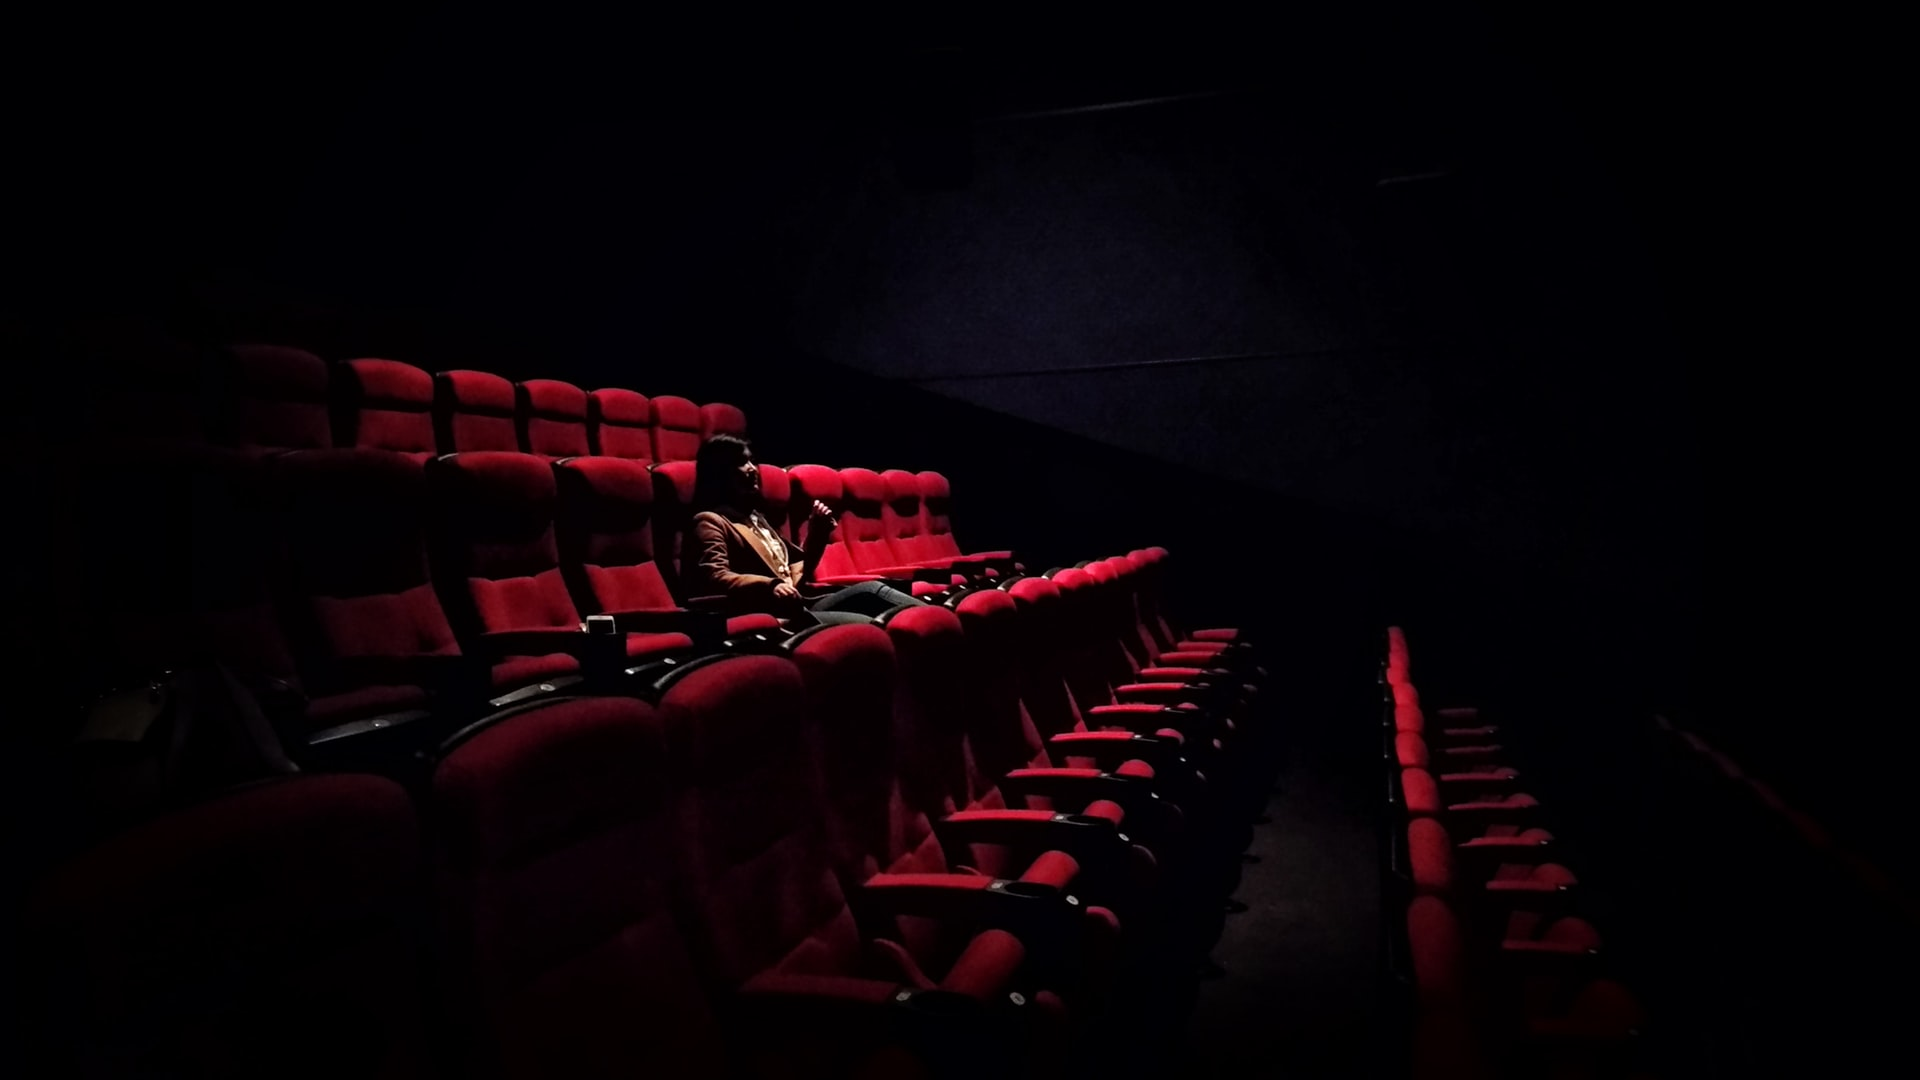 Woman alone in cinema. Photo by Karen Zhao/Unsplash